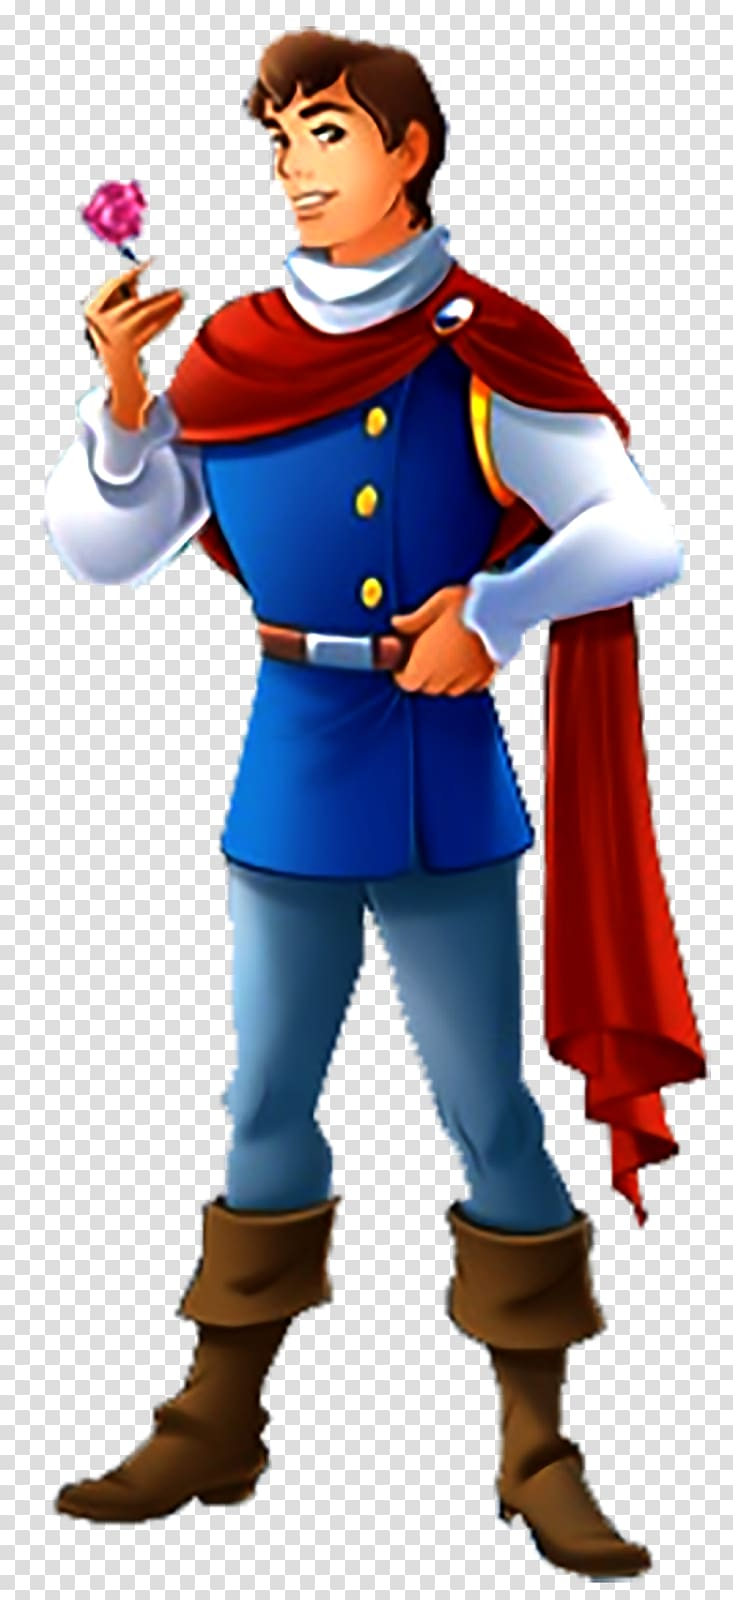 Frozen clipart evil prince. Charming snow white and